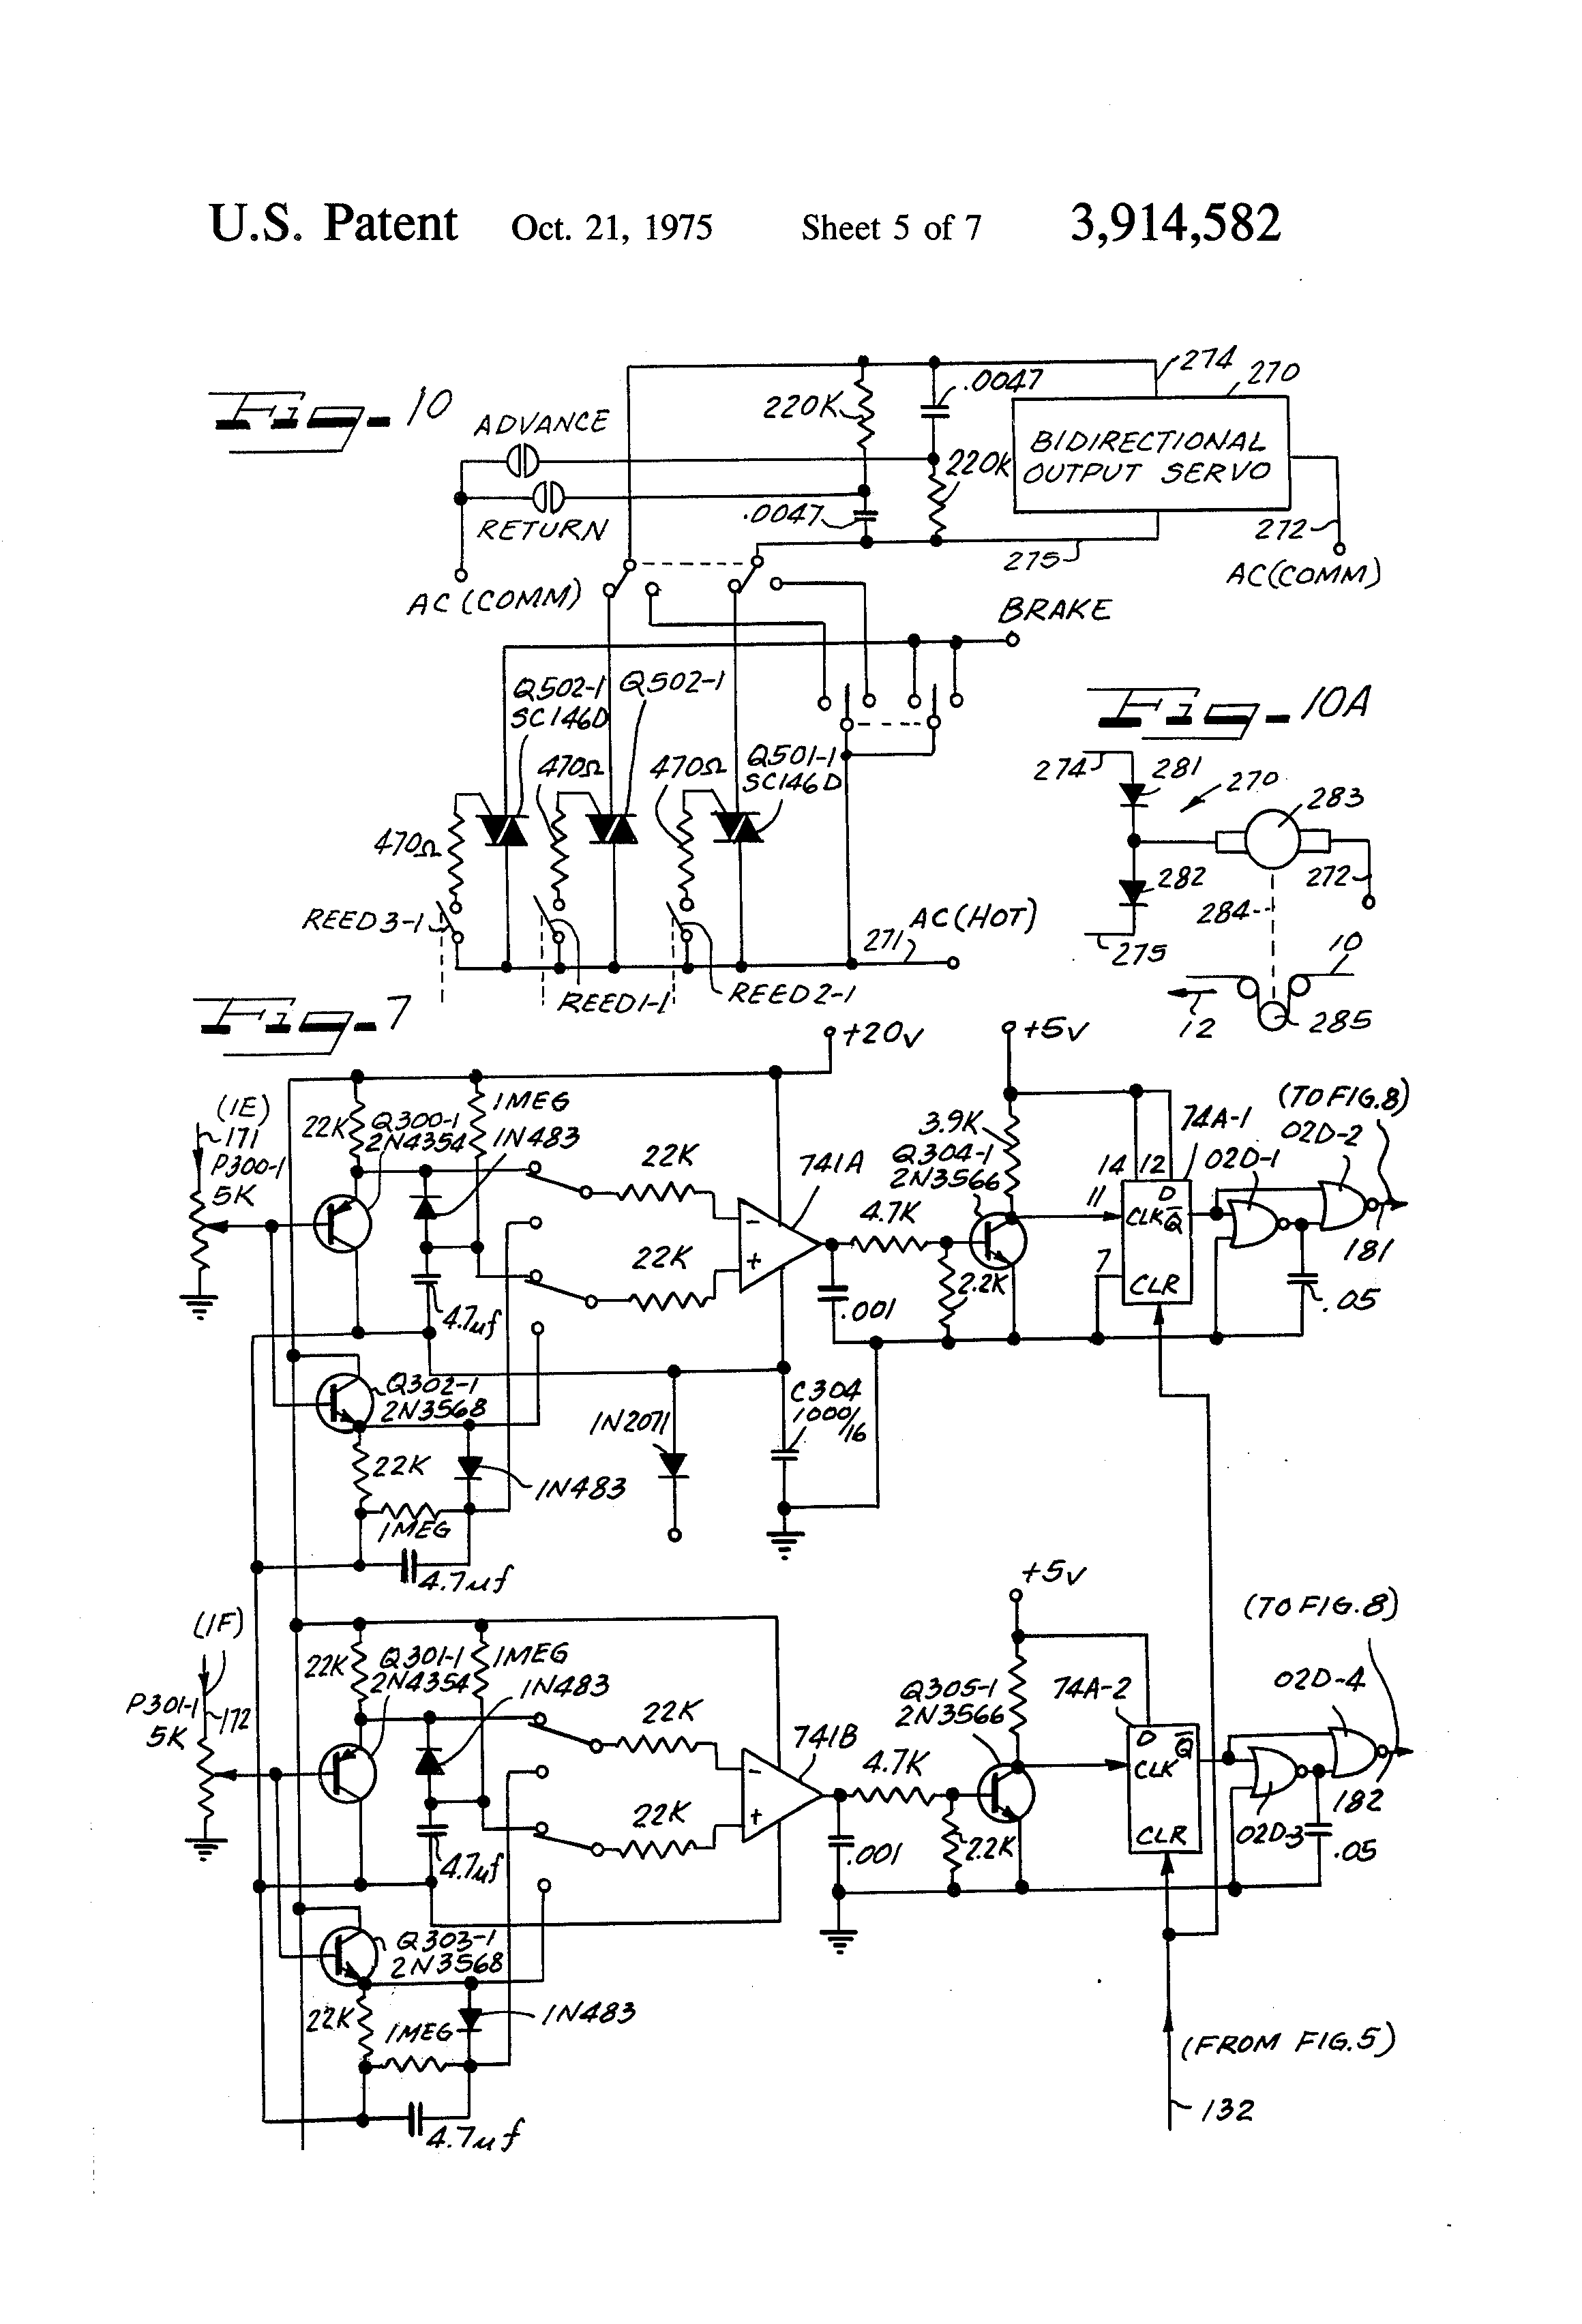 7493 Counter Circuit Diagram Great Design Of Wiring Decade Get Free Image About As A Connected Four Bit For Breadboard